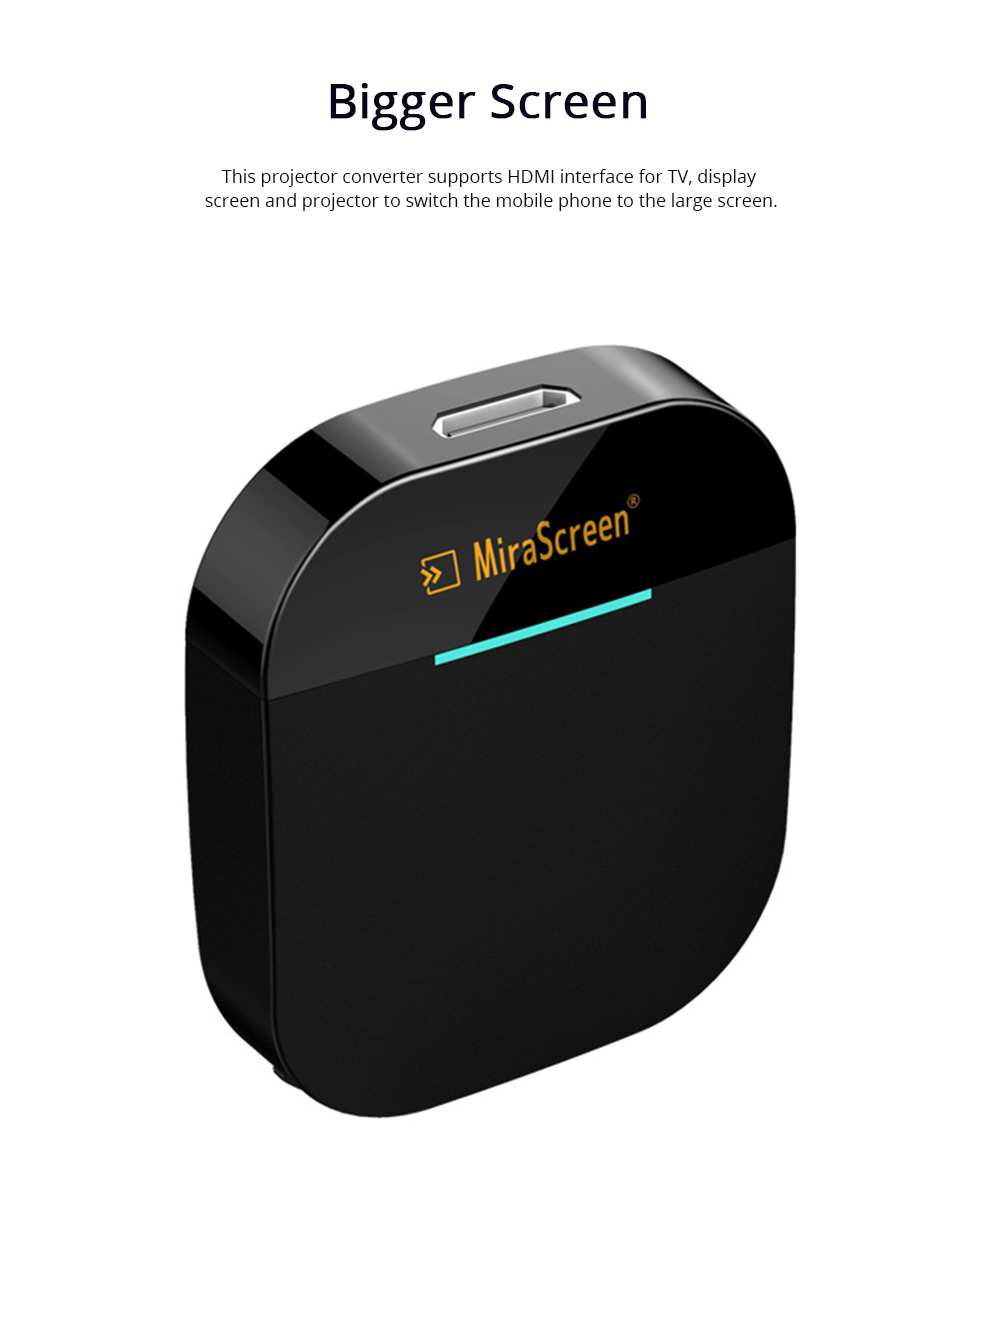 Wireless HD Projector Display Mobile Phone Connected TV Artifact Screen Saver Projector Converter Display Receiver 3